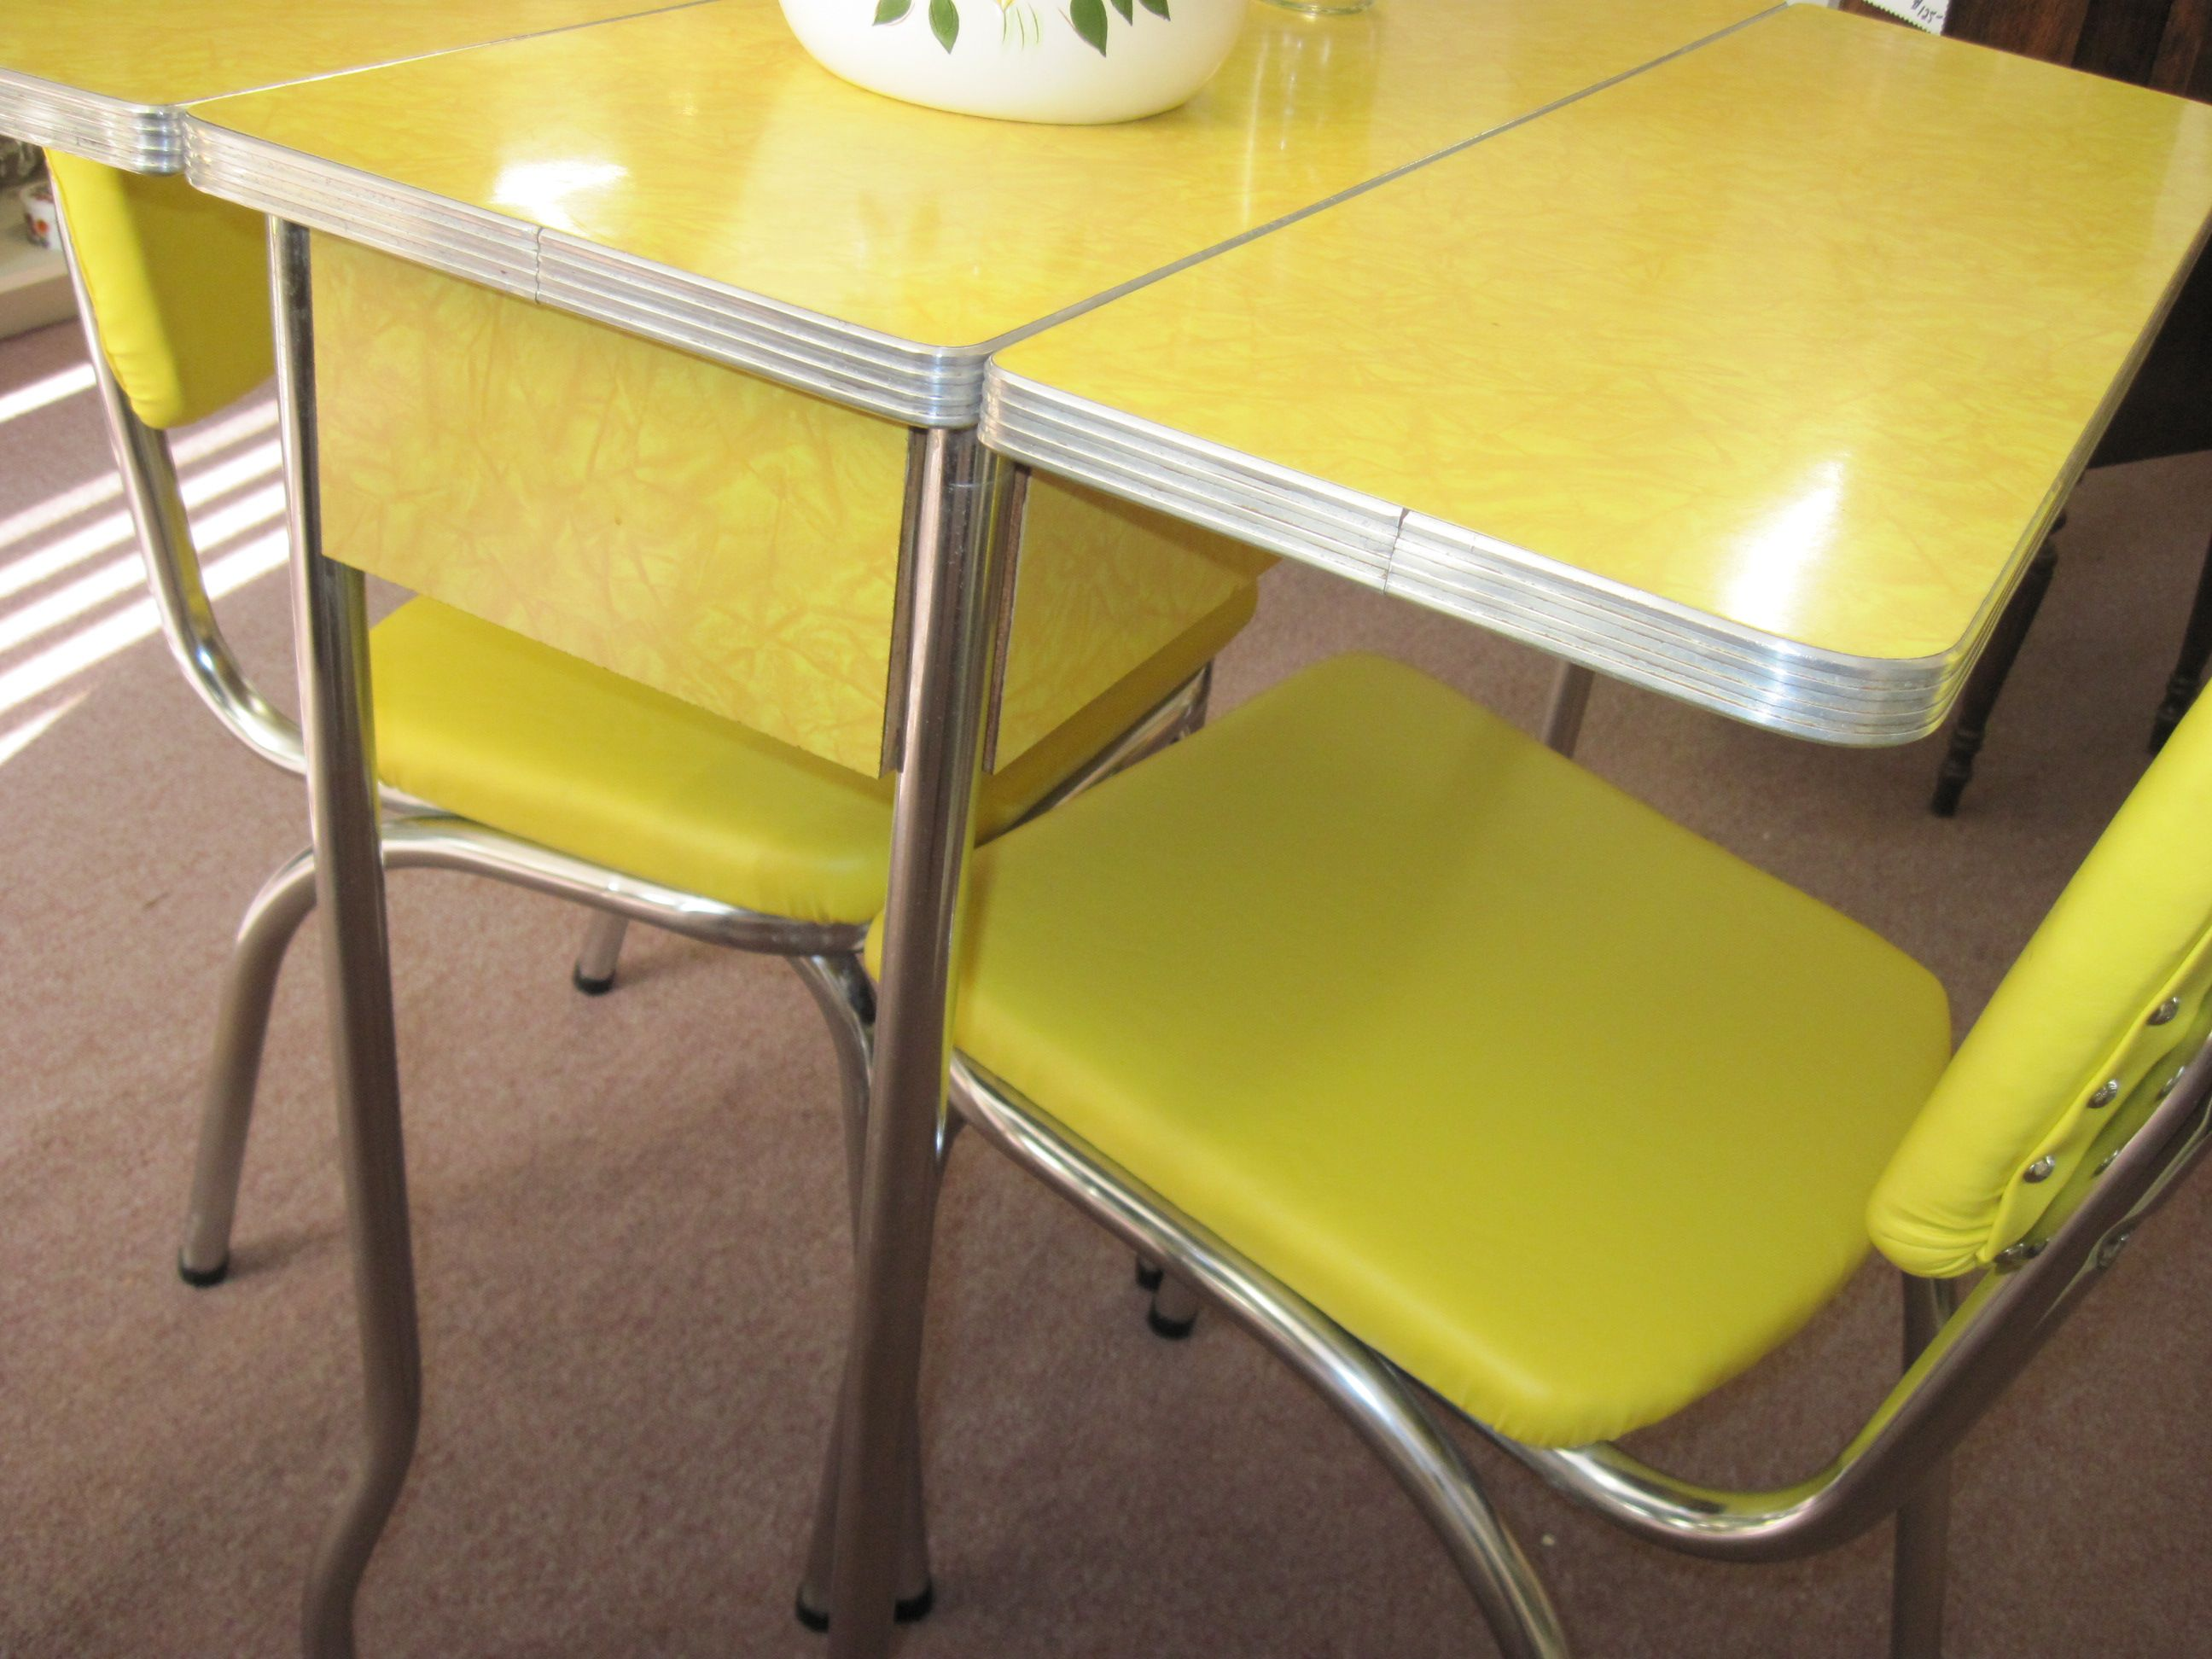 drop leaf kitchen table and chairs contemporary dining room uk retro tables yellow 1950 s cracked ice formica